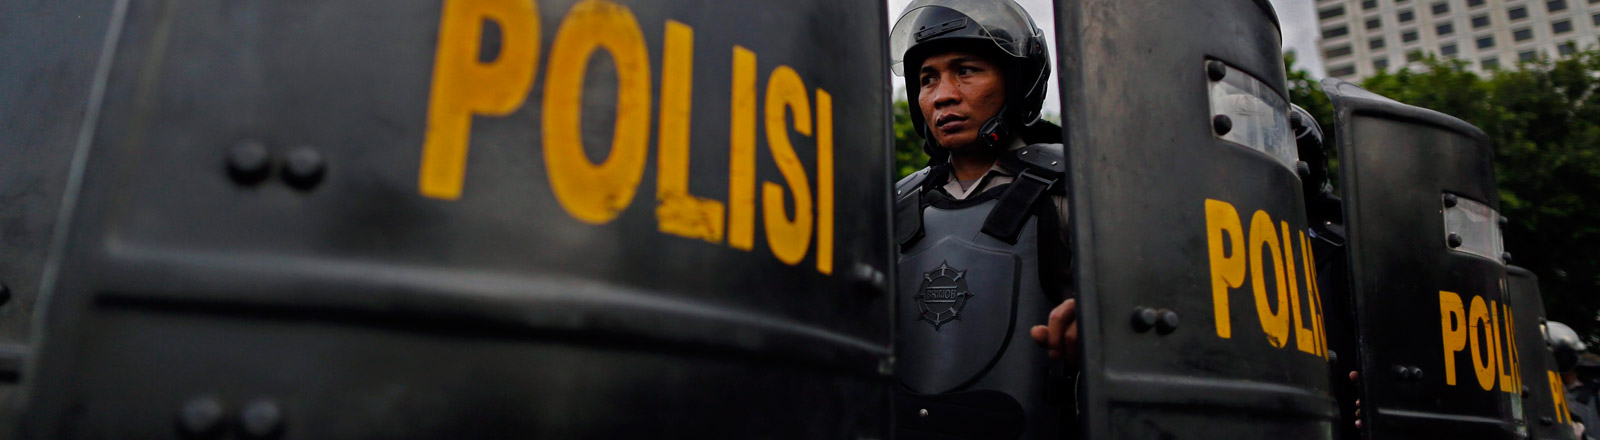 Polizisten in Indonesien